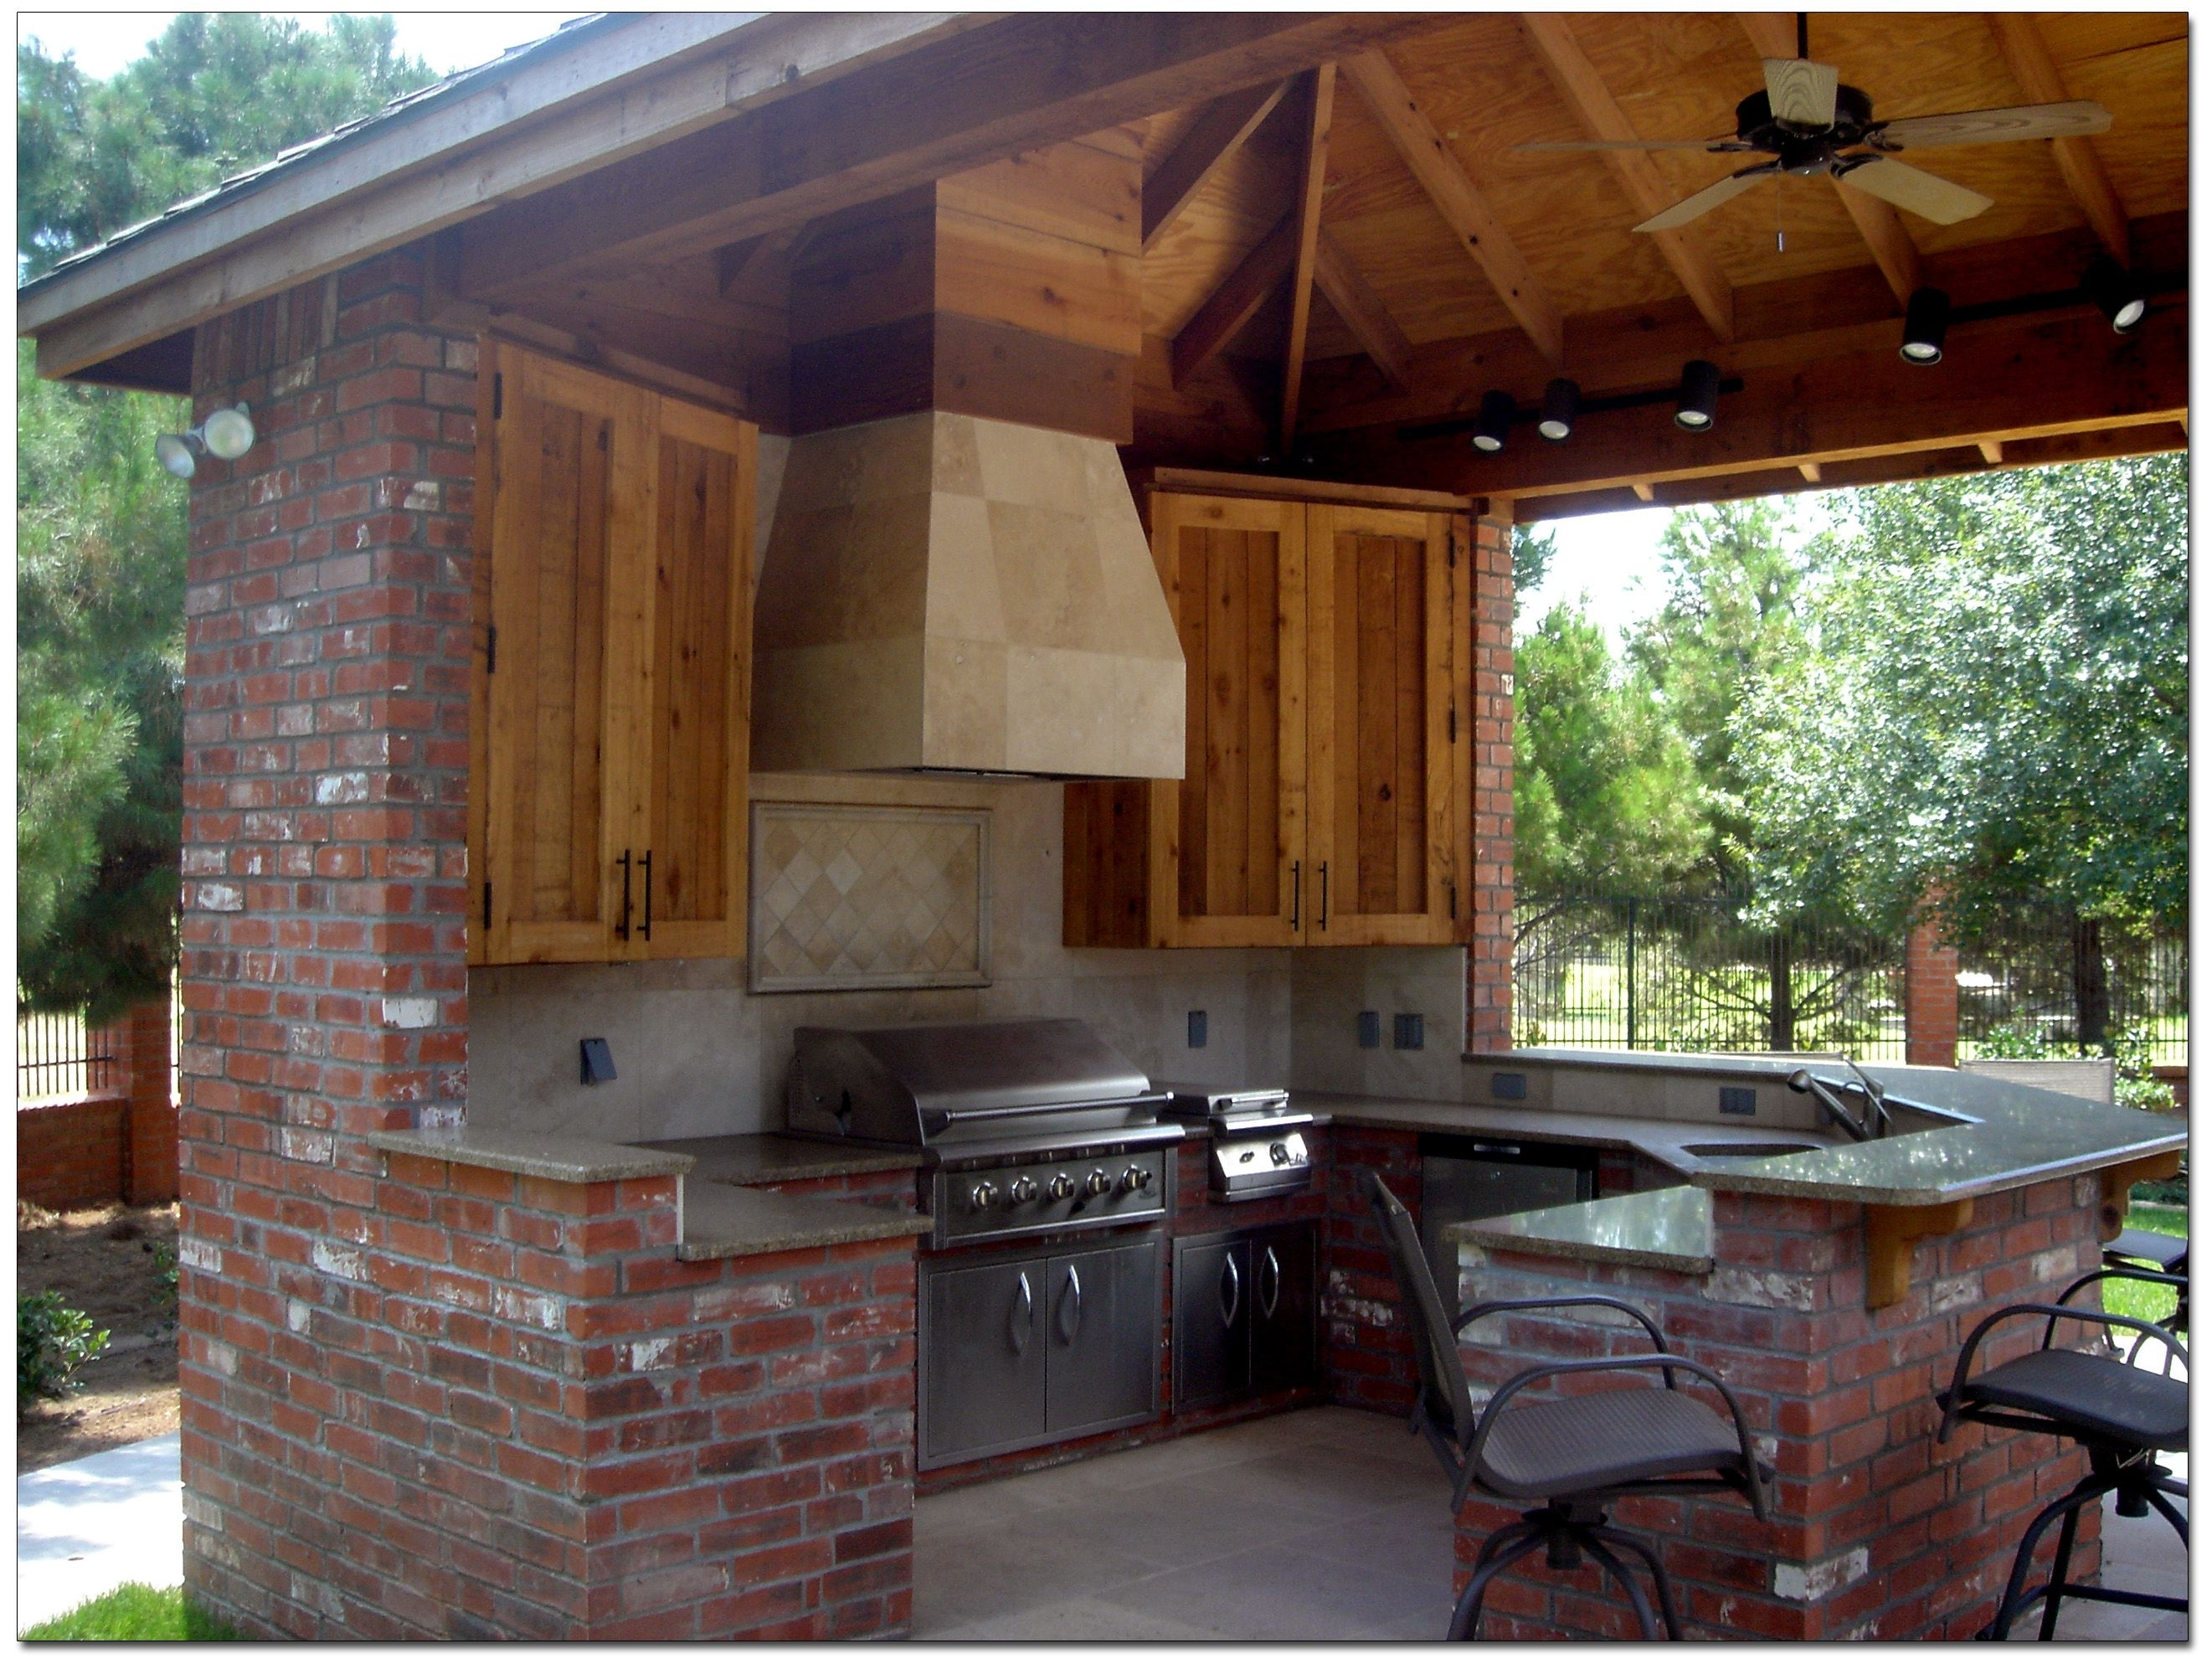 Image of: Single Sink Under Arched Crane On Countertops And Brick Wall For Pertaining To Outdoor Kitchen Wood Countertops Nice Outdoor Kitchen Wood Countertops Inspiration